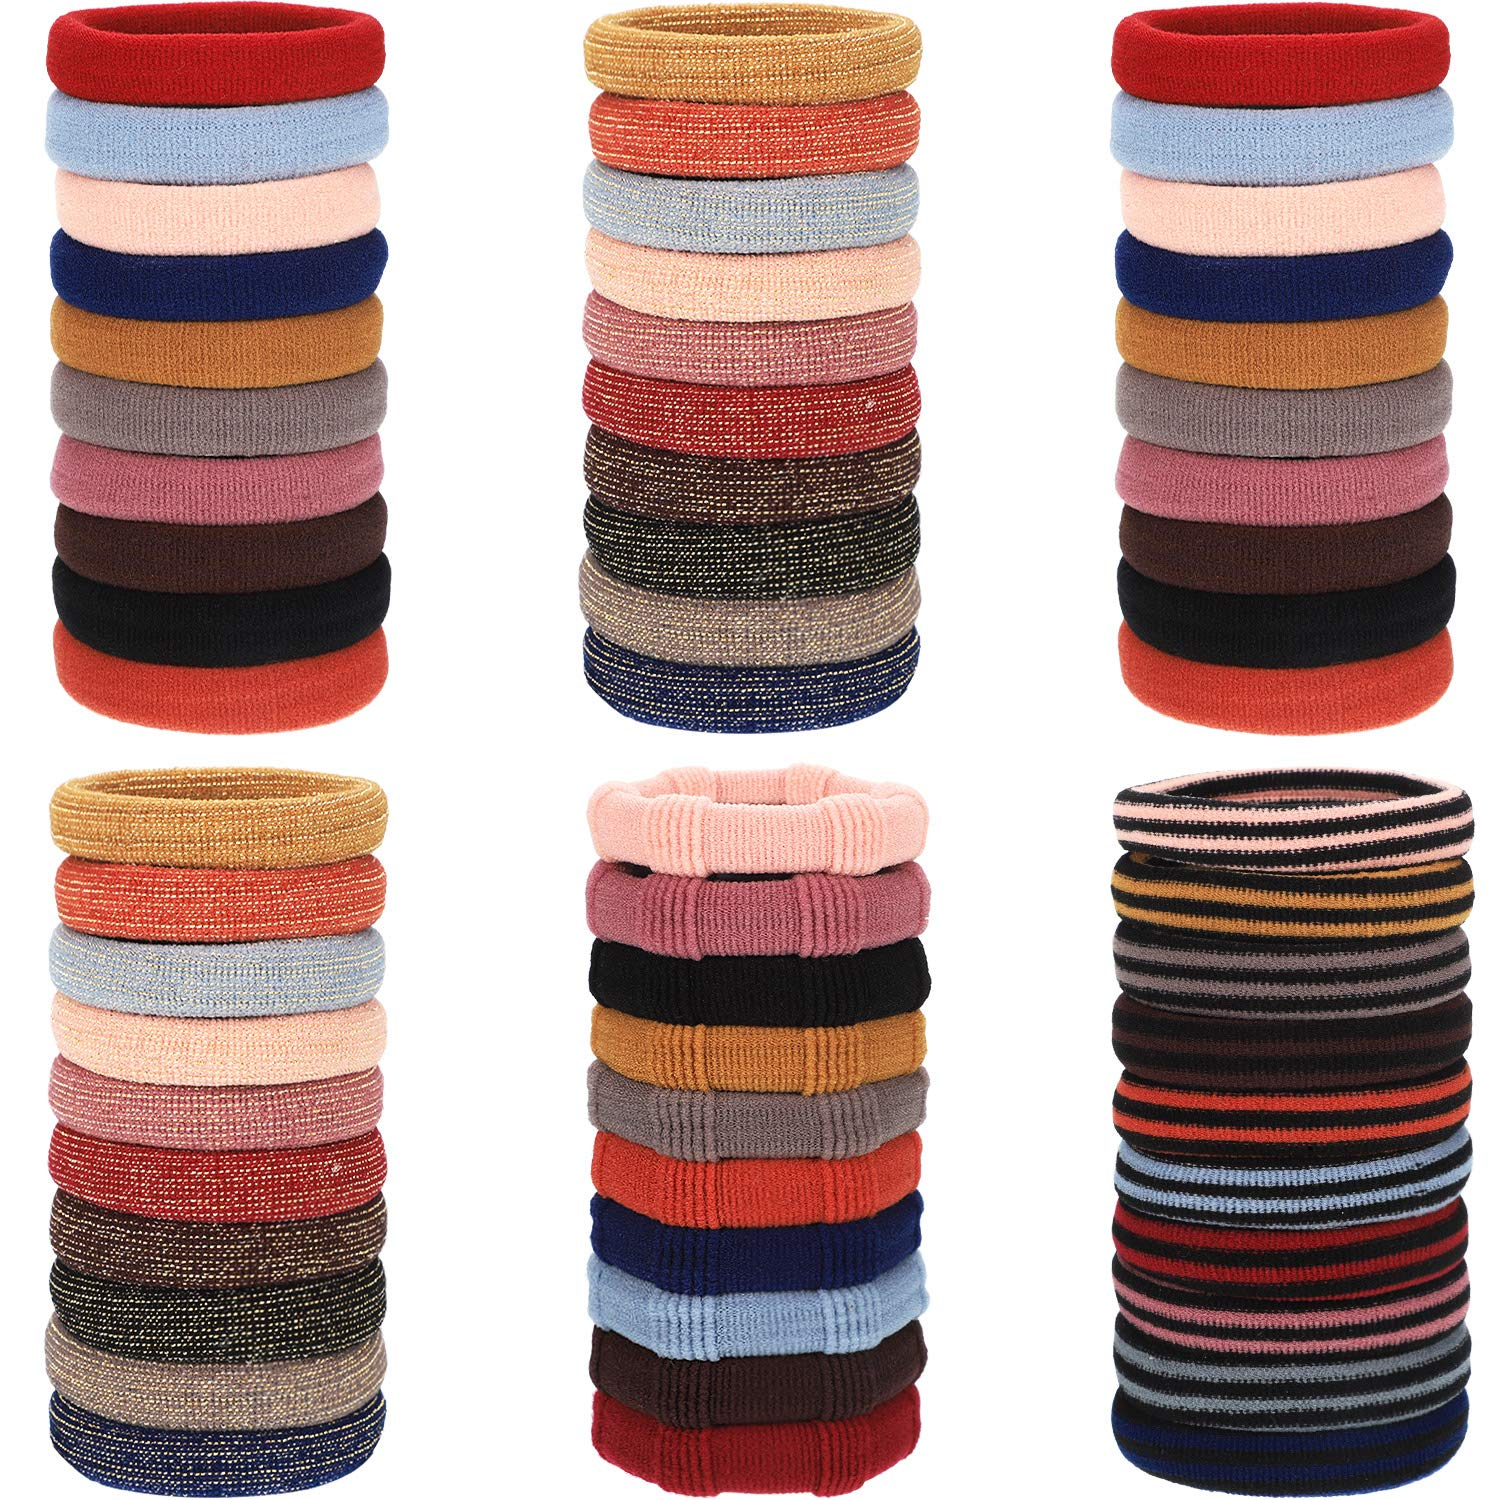 60 Pieces Seamless Cotton Hair Ties Elastic Hair Bands Stretch Ponytail Holders No Crease Hair Ties for Women Girls, 4 Styles, Multicolors